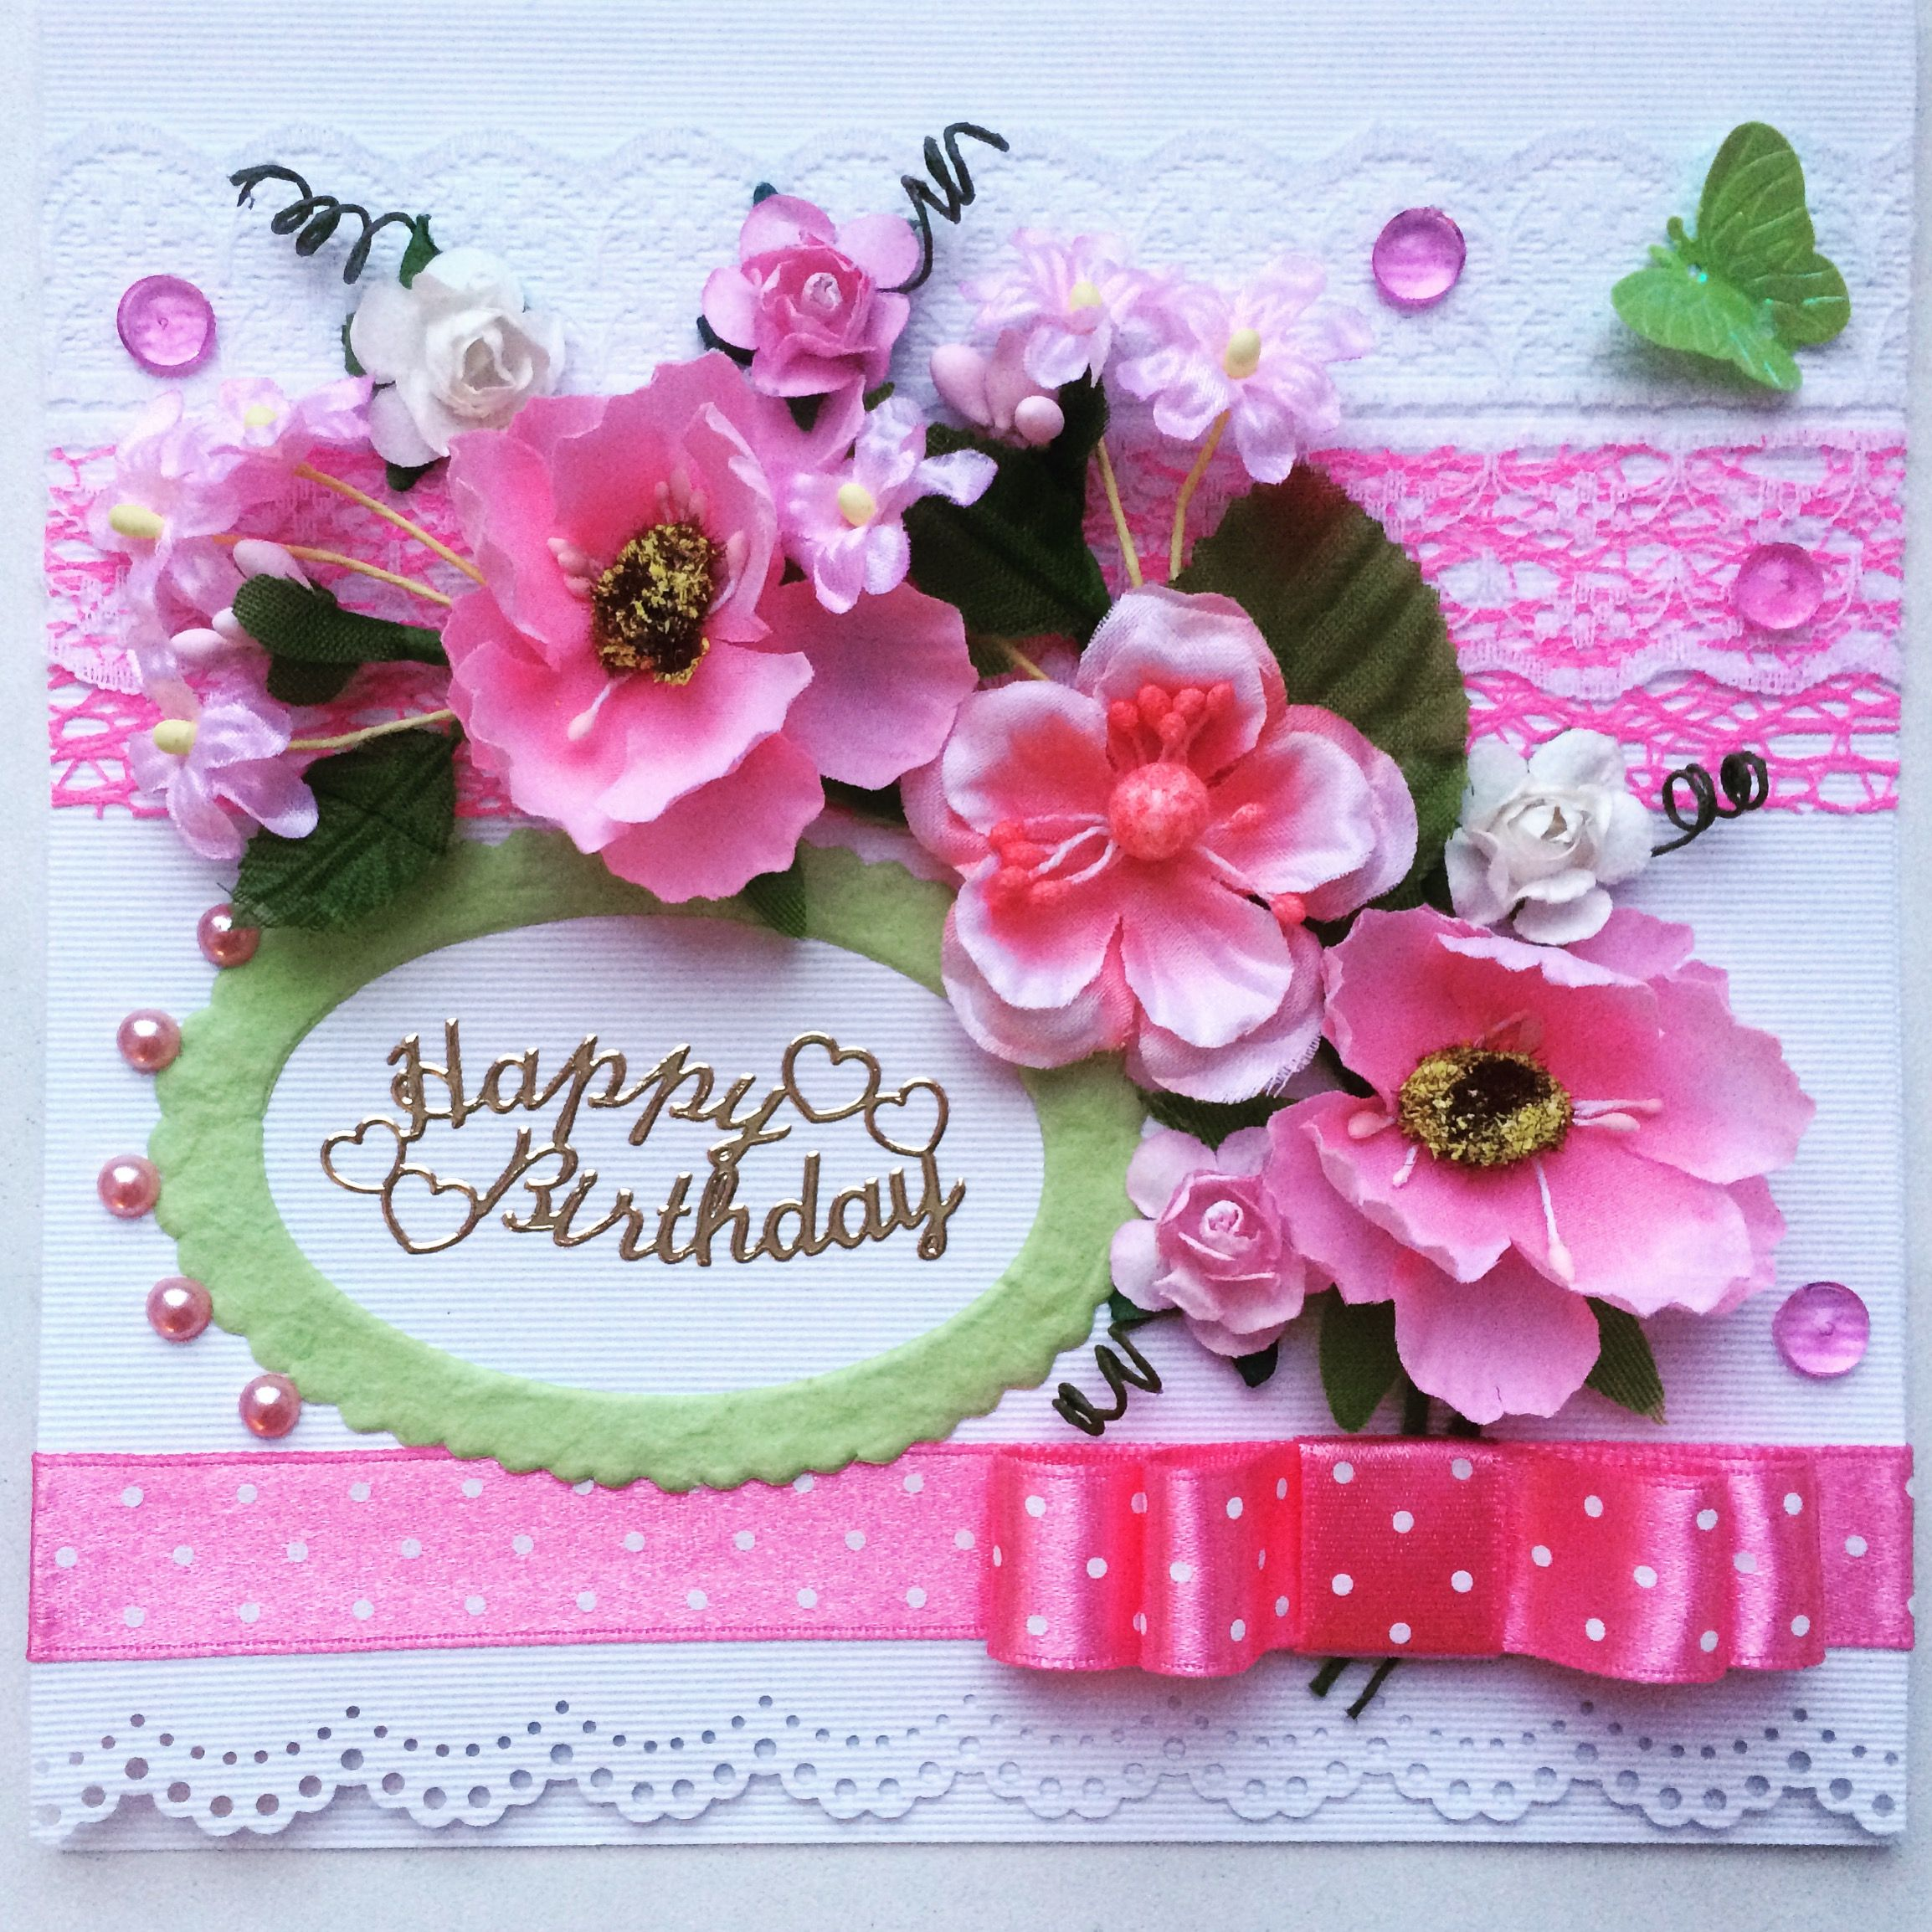 Pin By Tatyana Souche On Happy Birthday Cards Pinterest